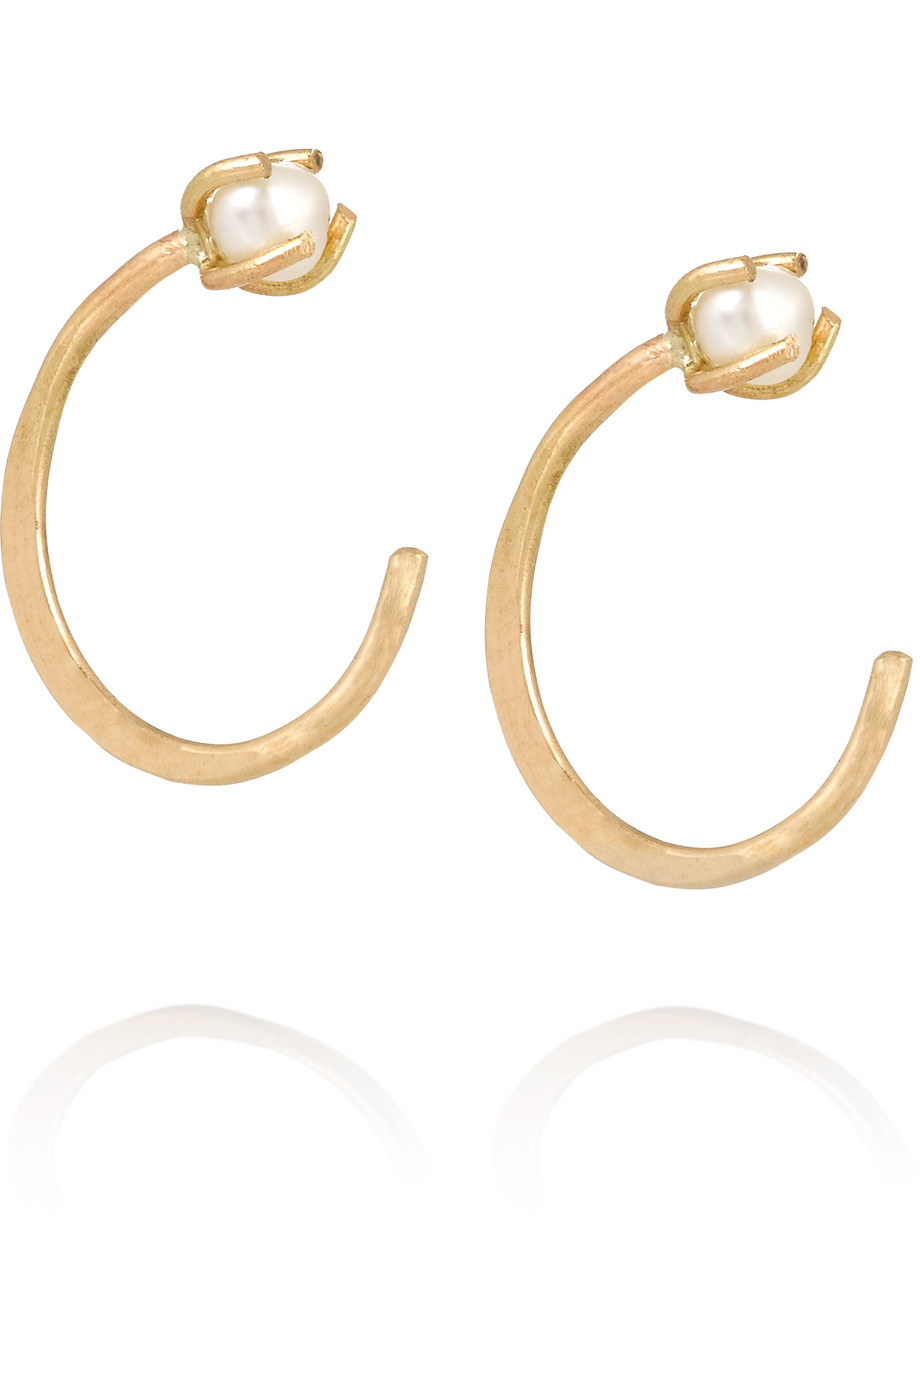 14-Karat Gold Pearl Earrings, Melissa Joy Manning, Women's